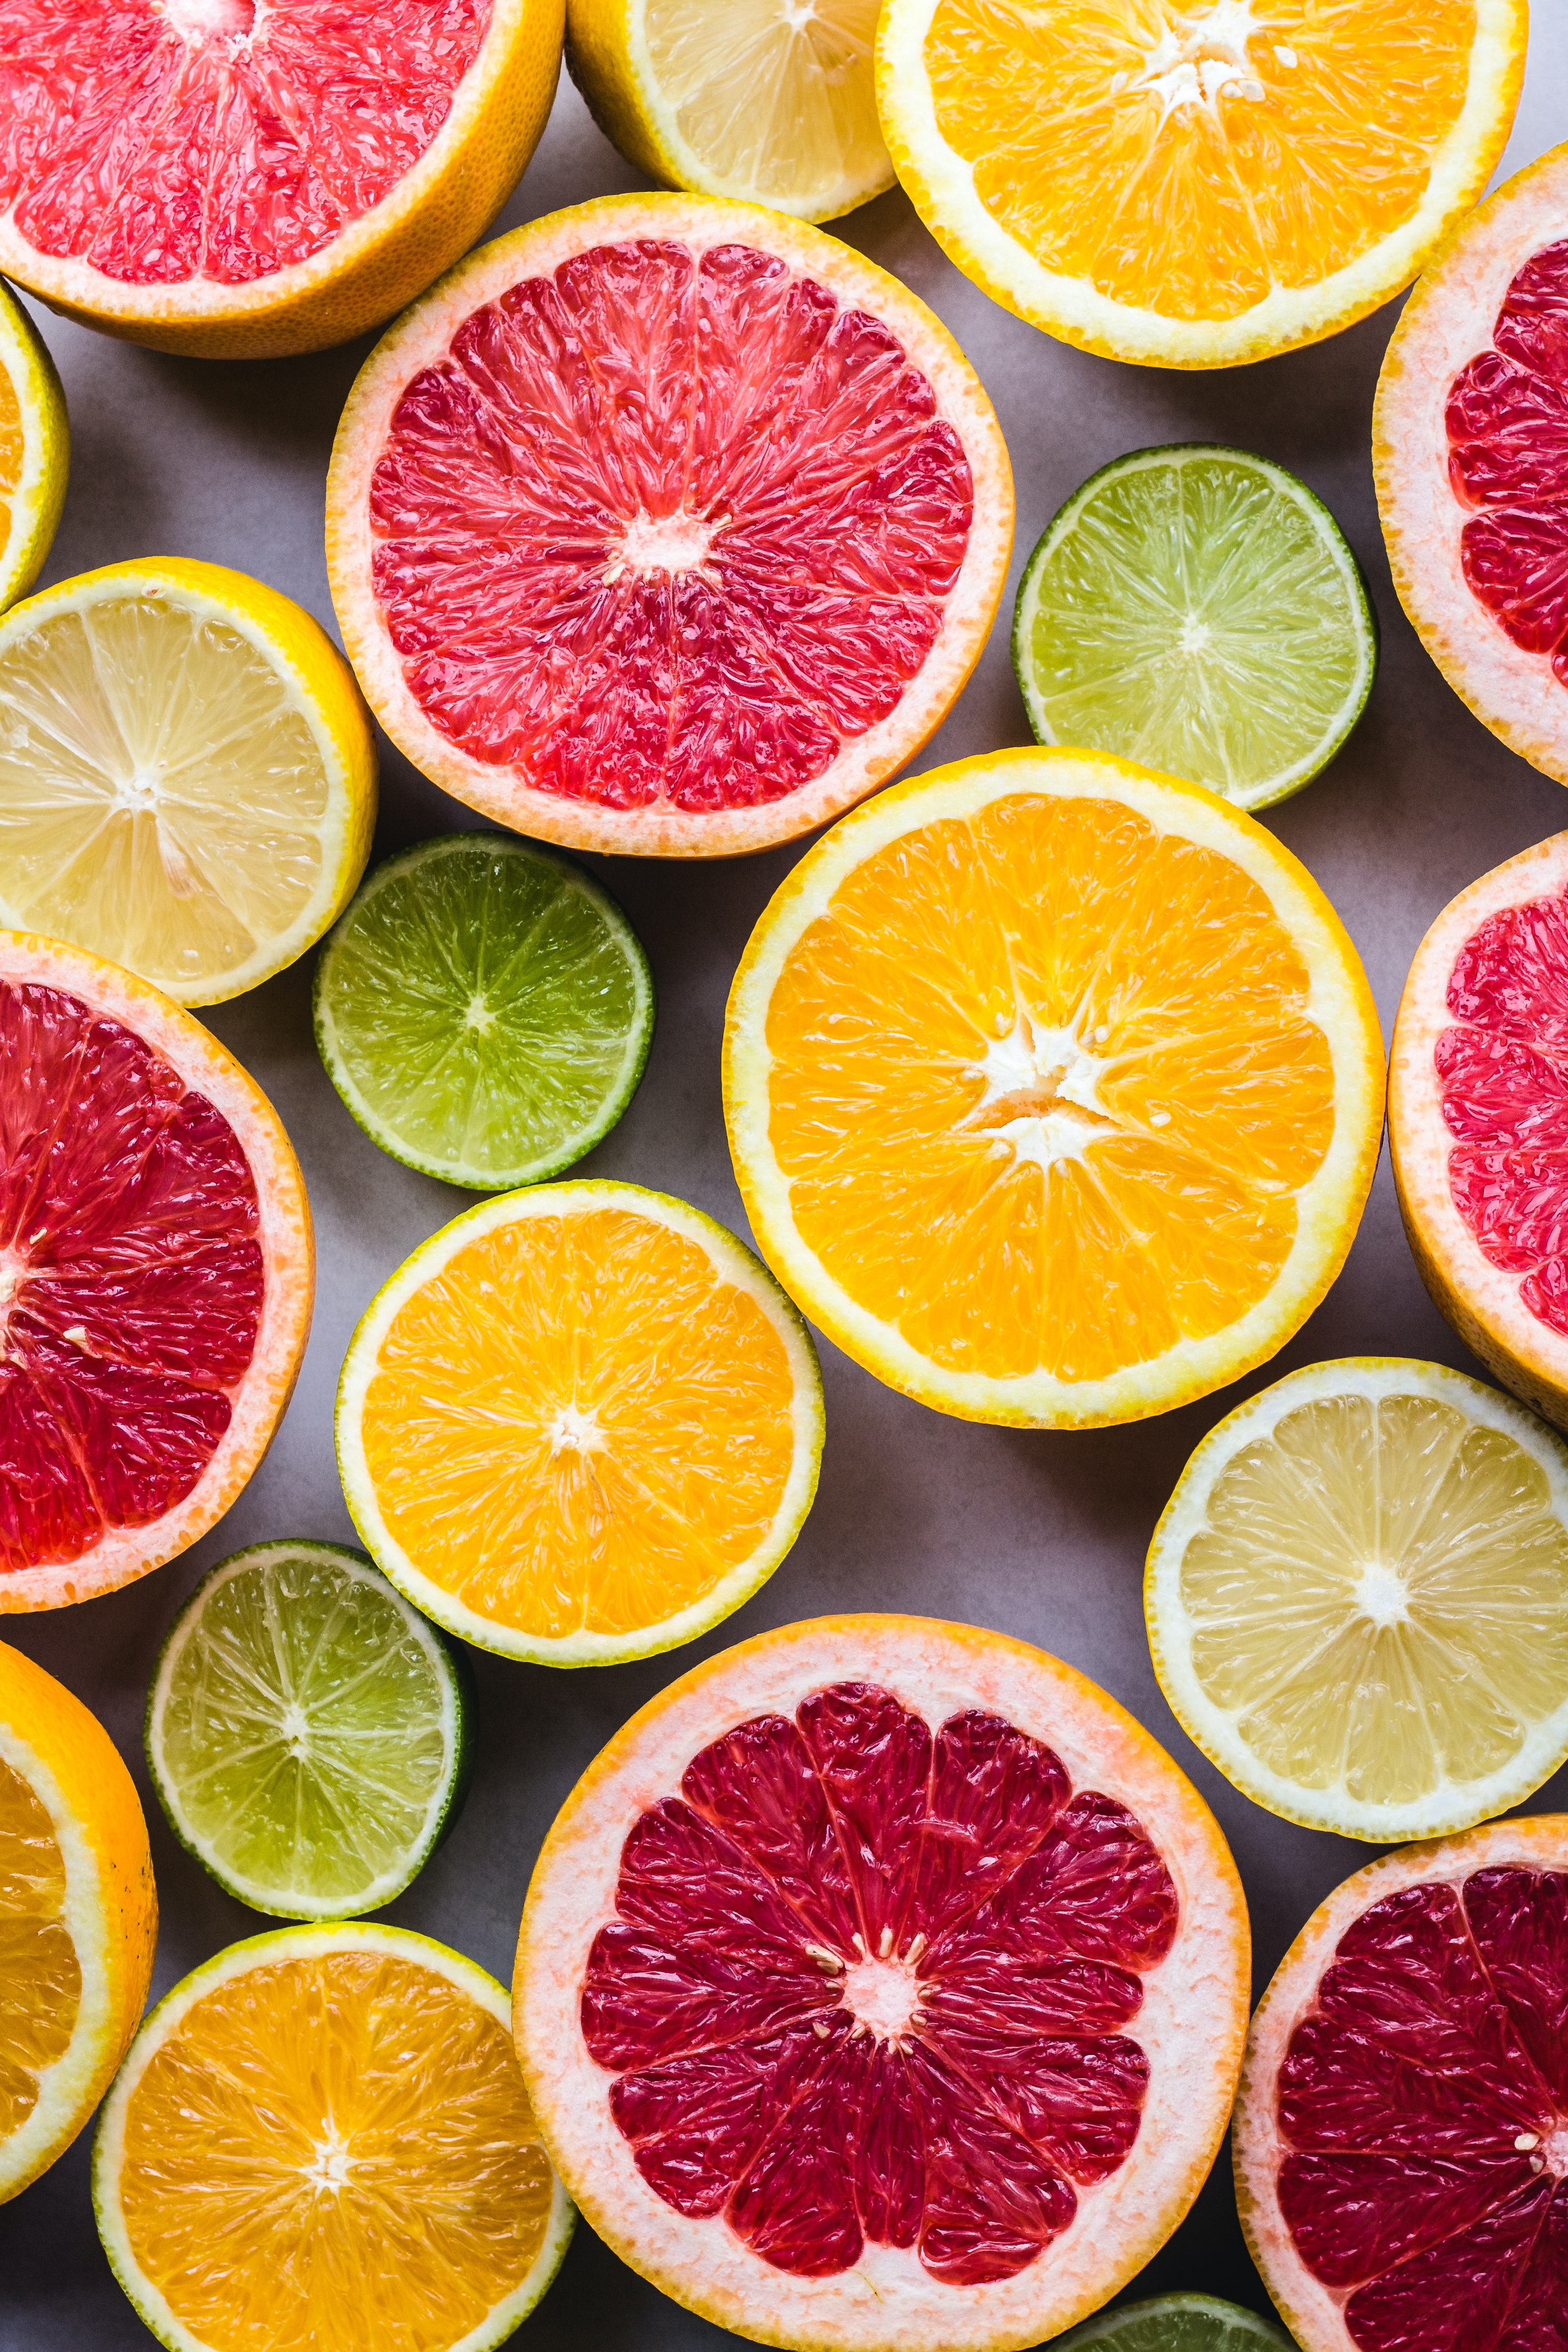 photo of various citrus fruit cut in half with insides facing up